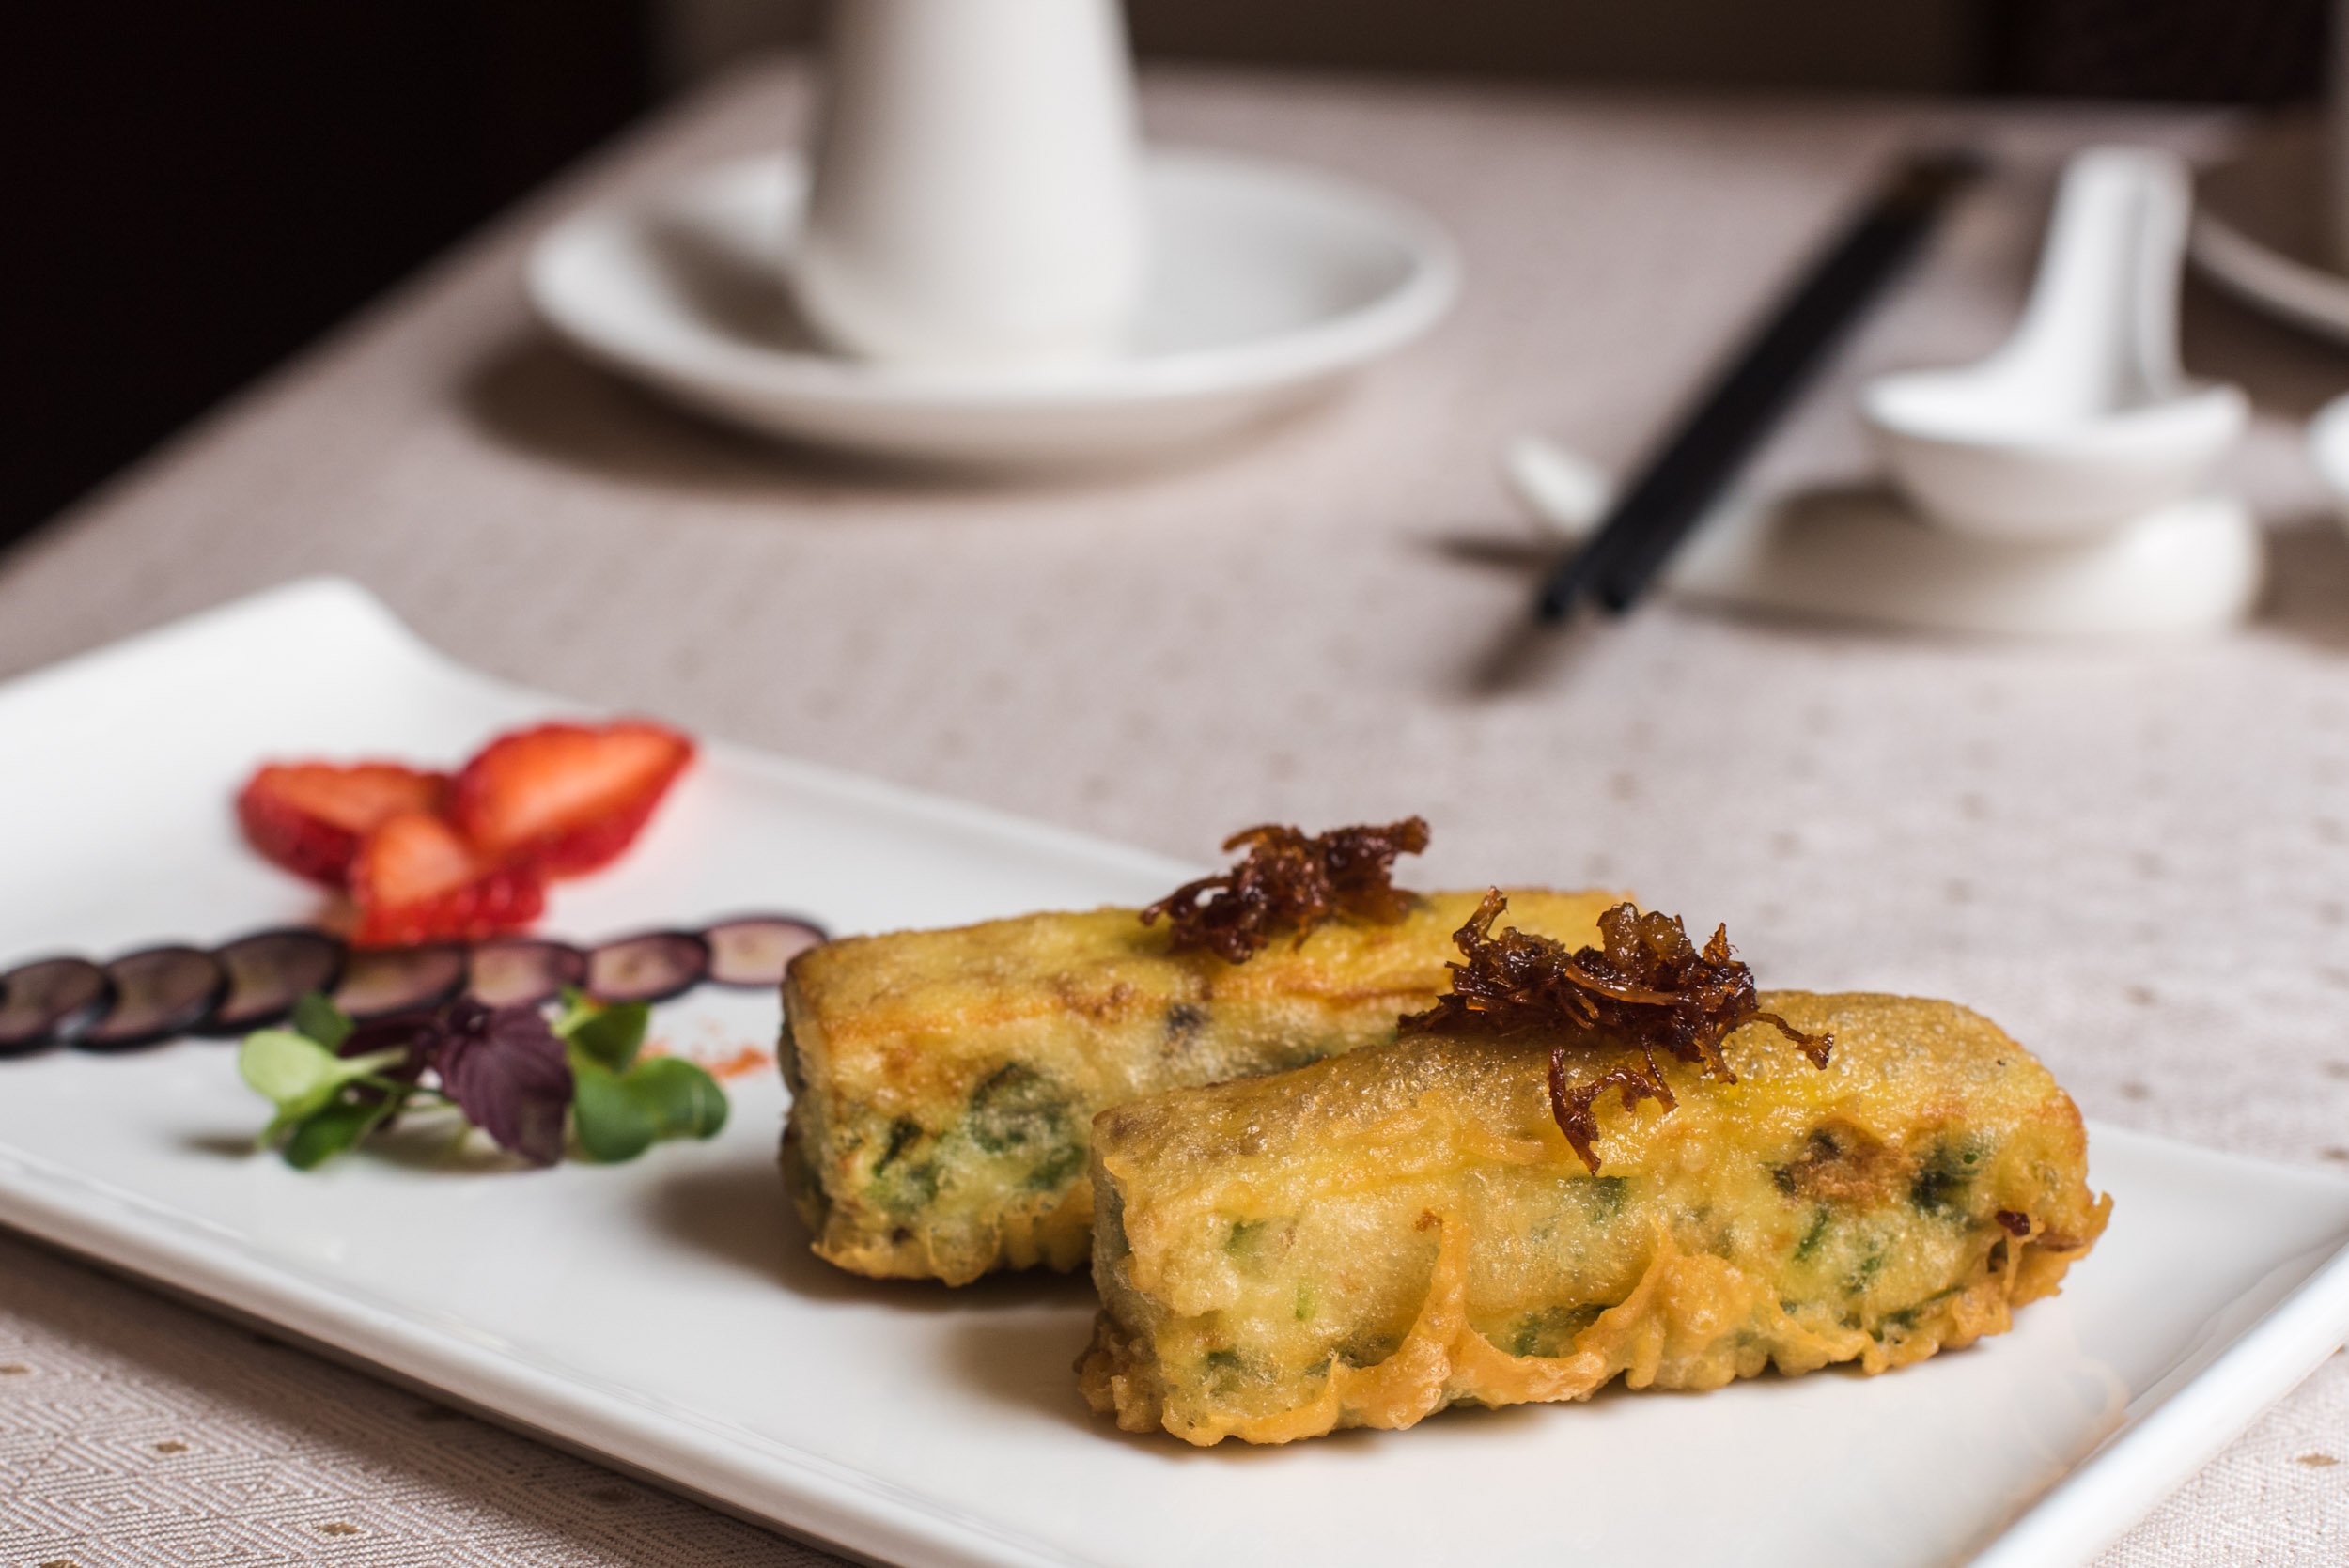 Deep-fried Beancurd Roll stuffed with Long Bean in Spicy XO Sauce - tasting portion